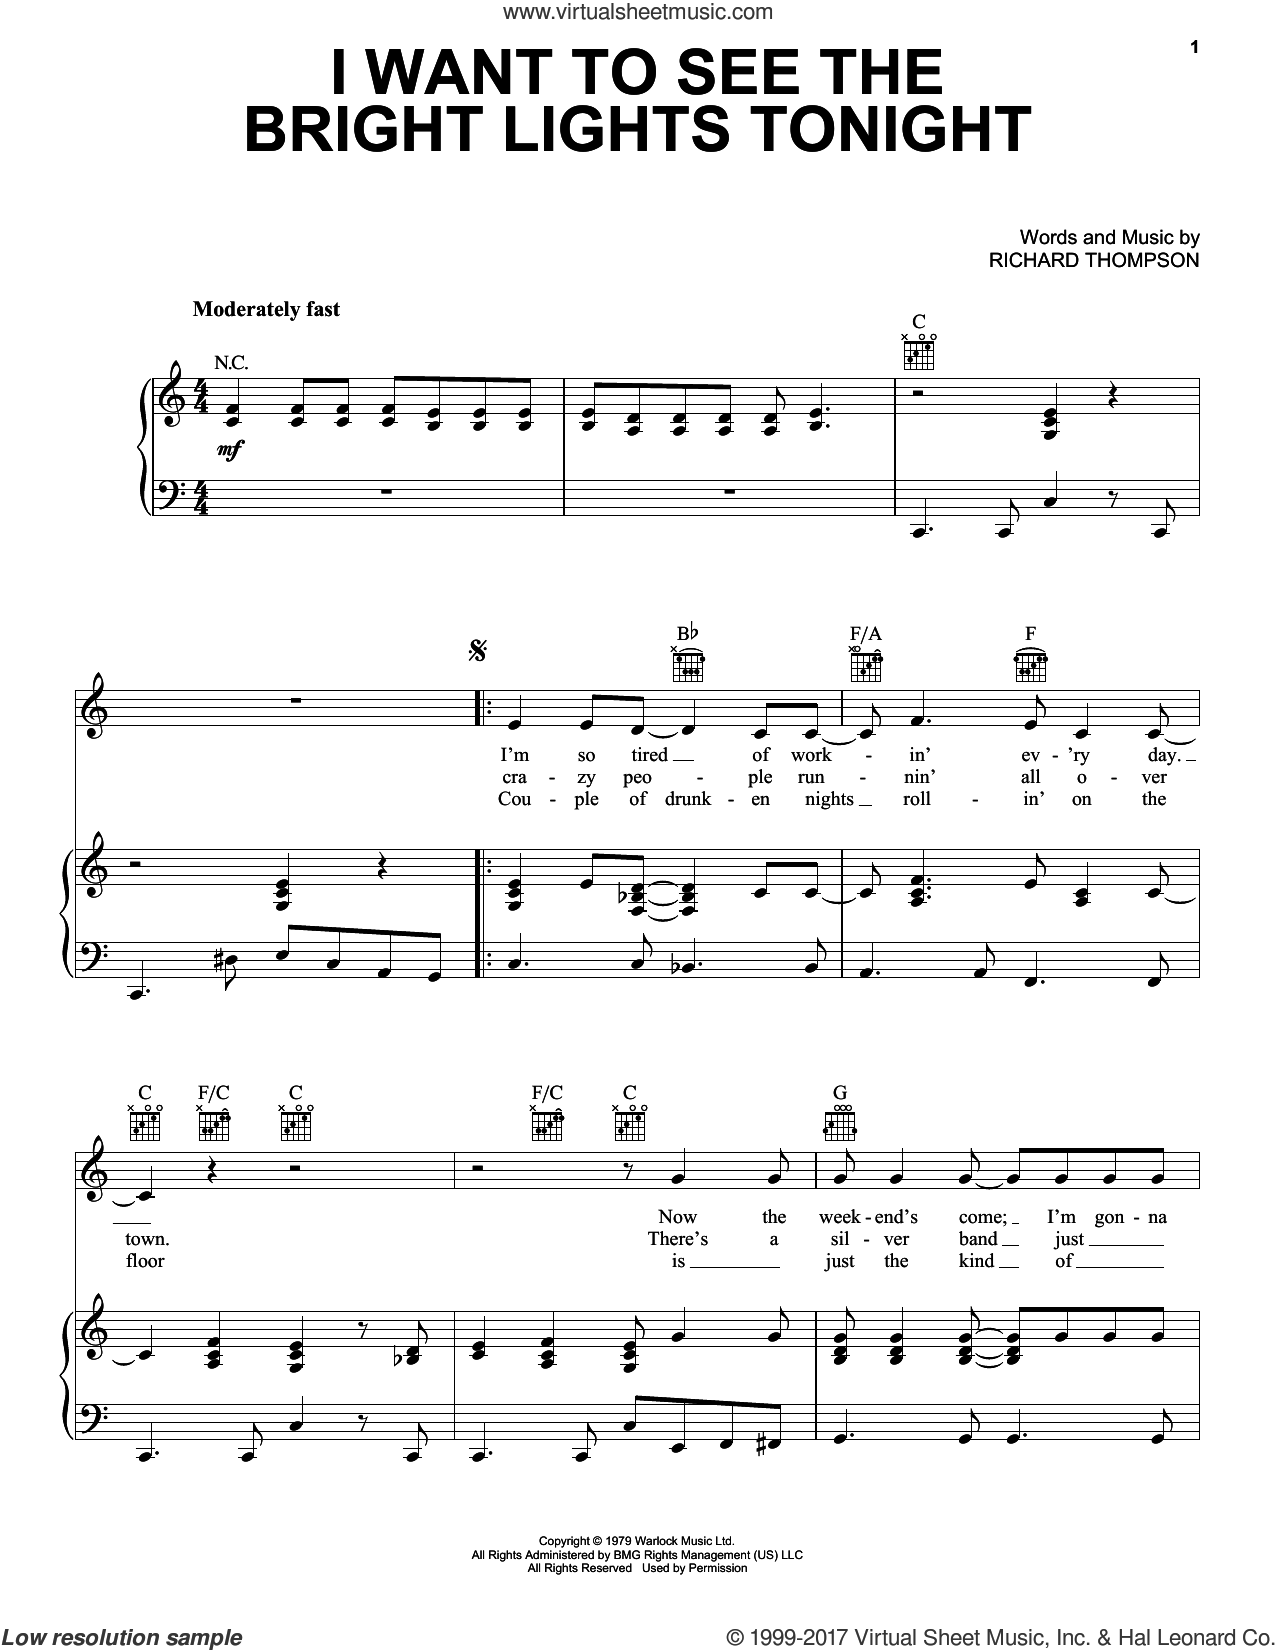 I Want To See The Bright Lights Tonight sheet music for voice, piano or guitar by Richard & Linda Thompson and Richard Thompson, intermediate skill level